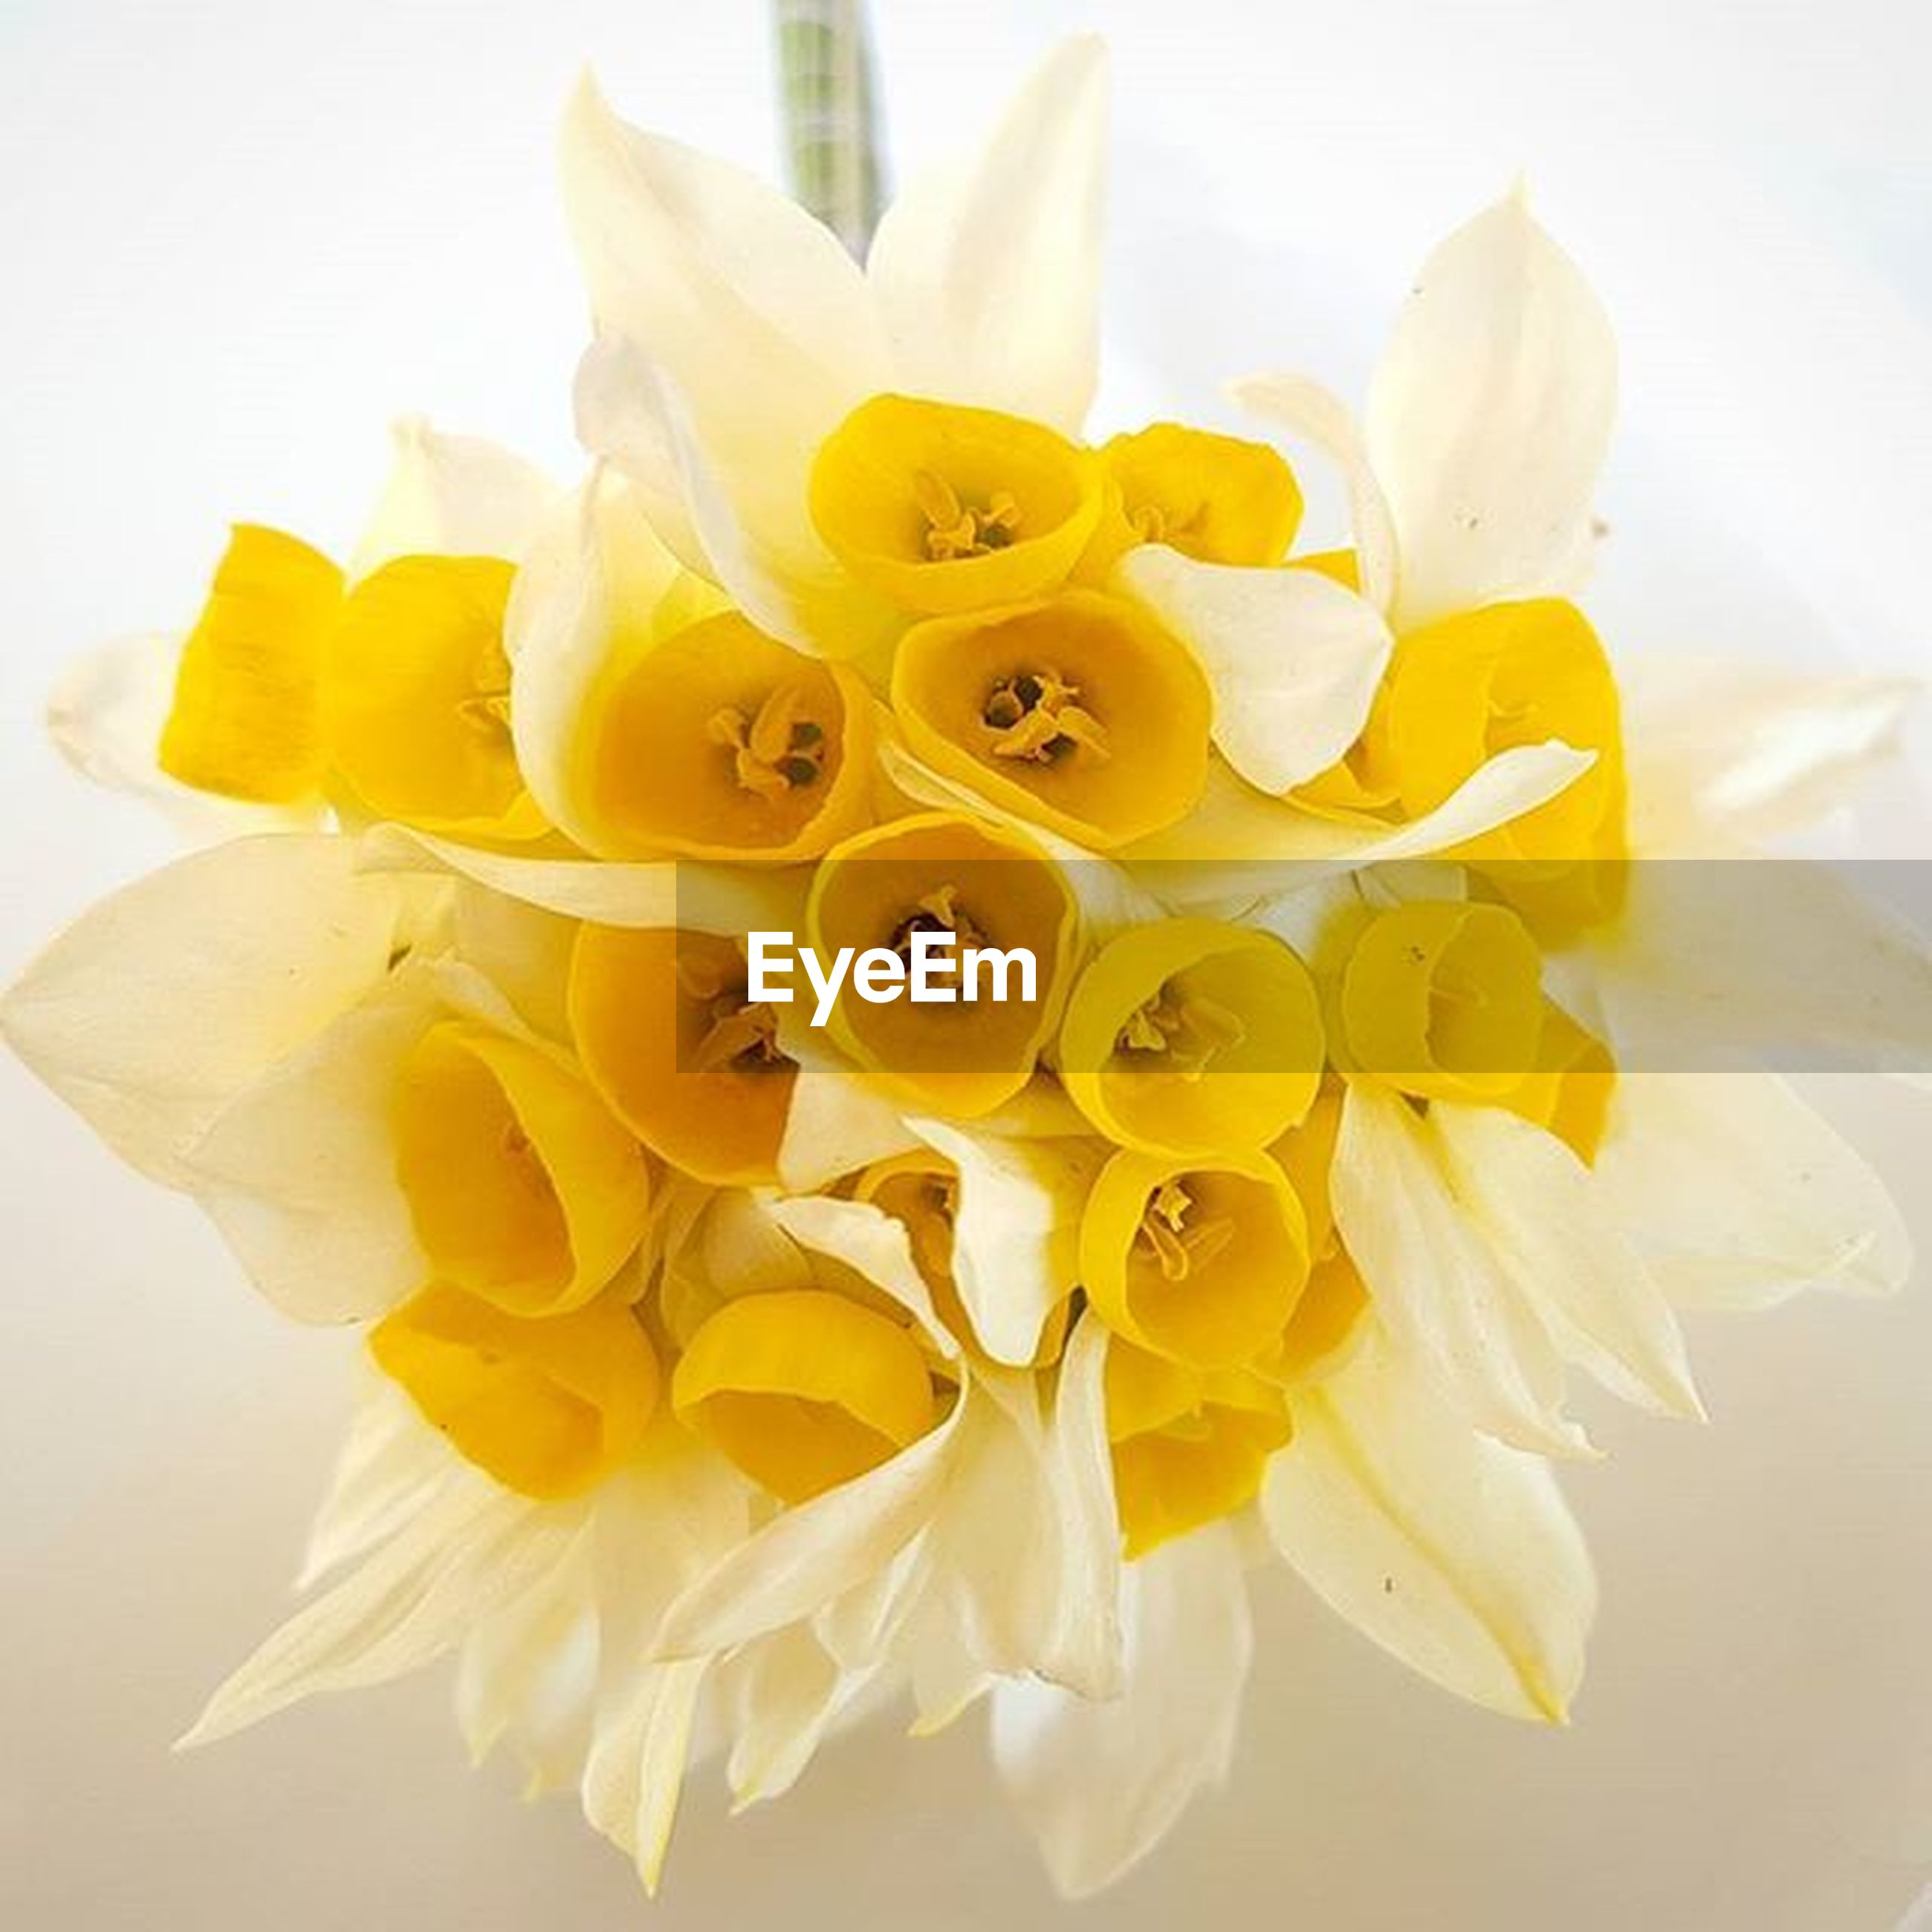 flower, petal, yellow, flower head, freshness, fragility, indoors, white background, studio shot, close-up, beauty in nature, white color, pollen, still life, no people, nature, vase, orchid, decoration, high angle view